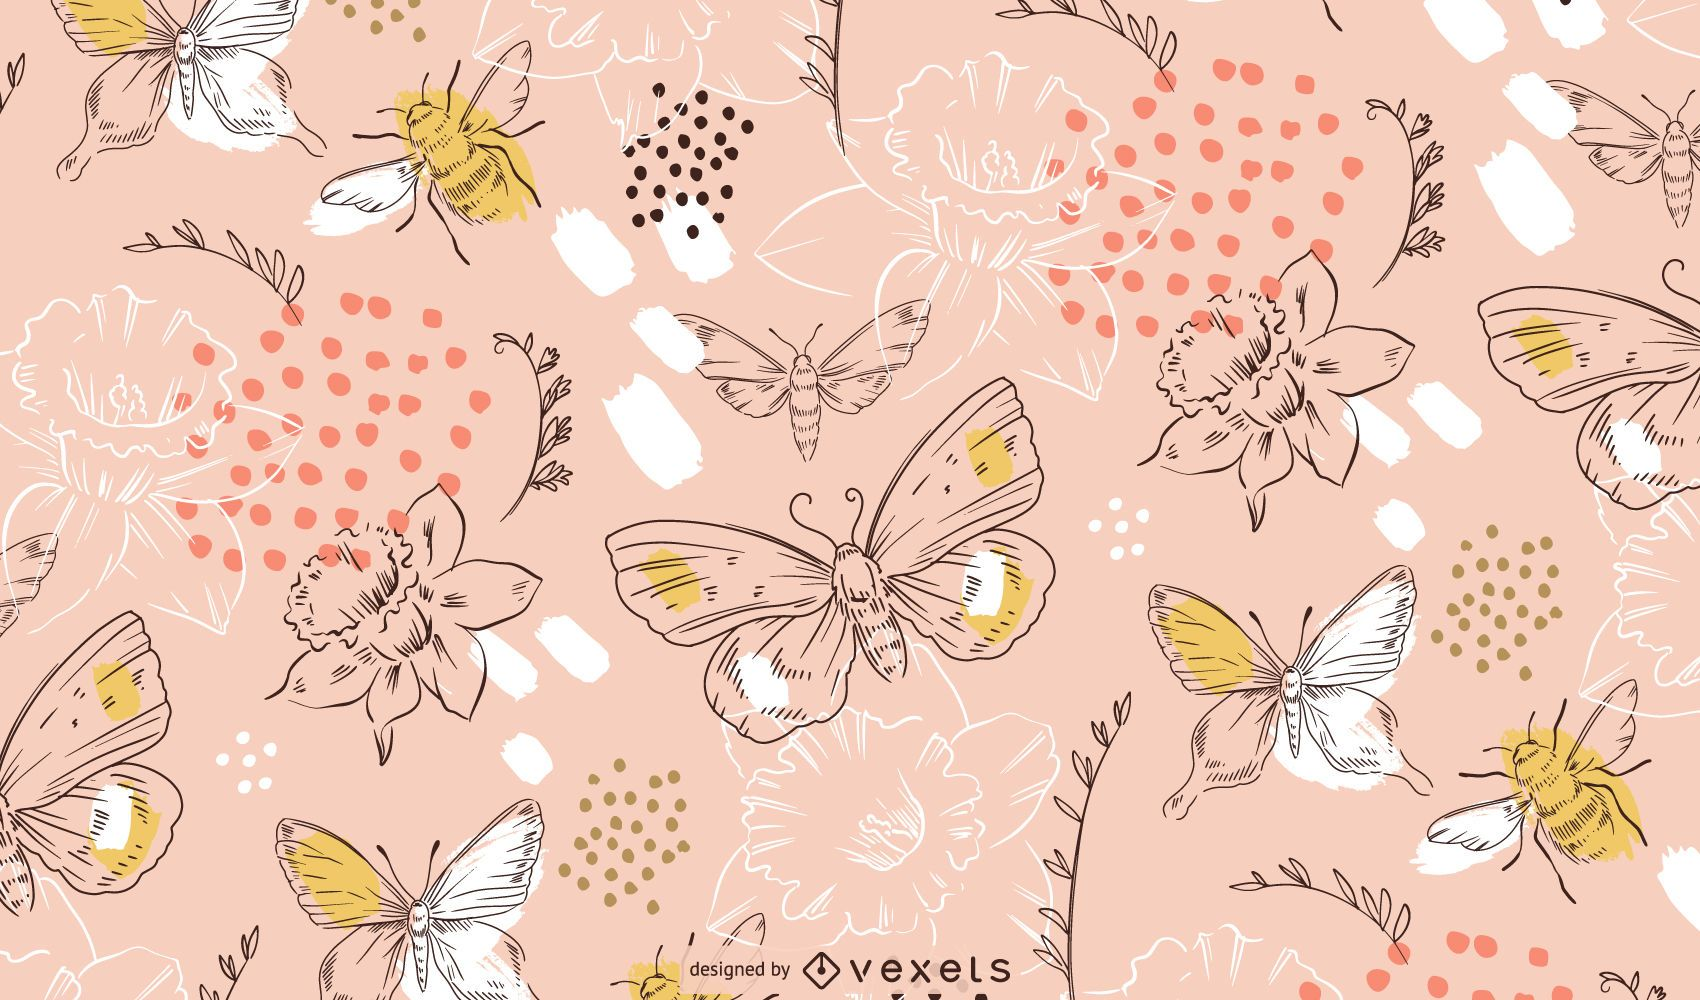 Spring flowers and butterflies pattern